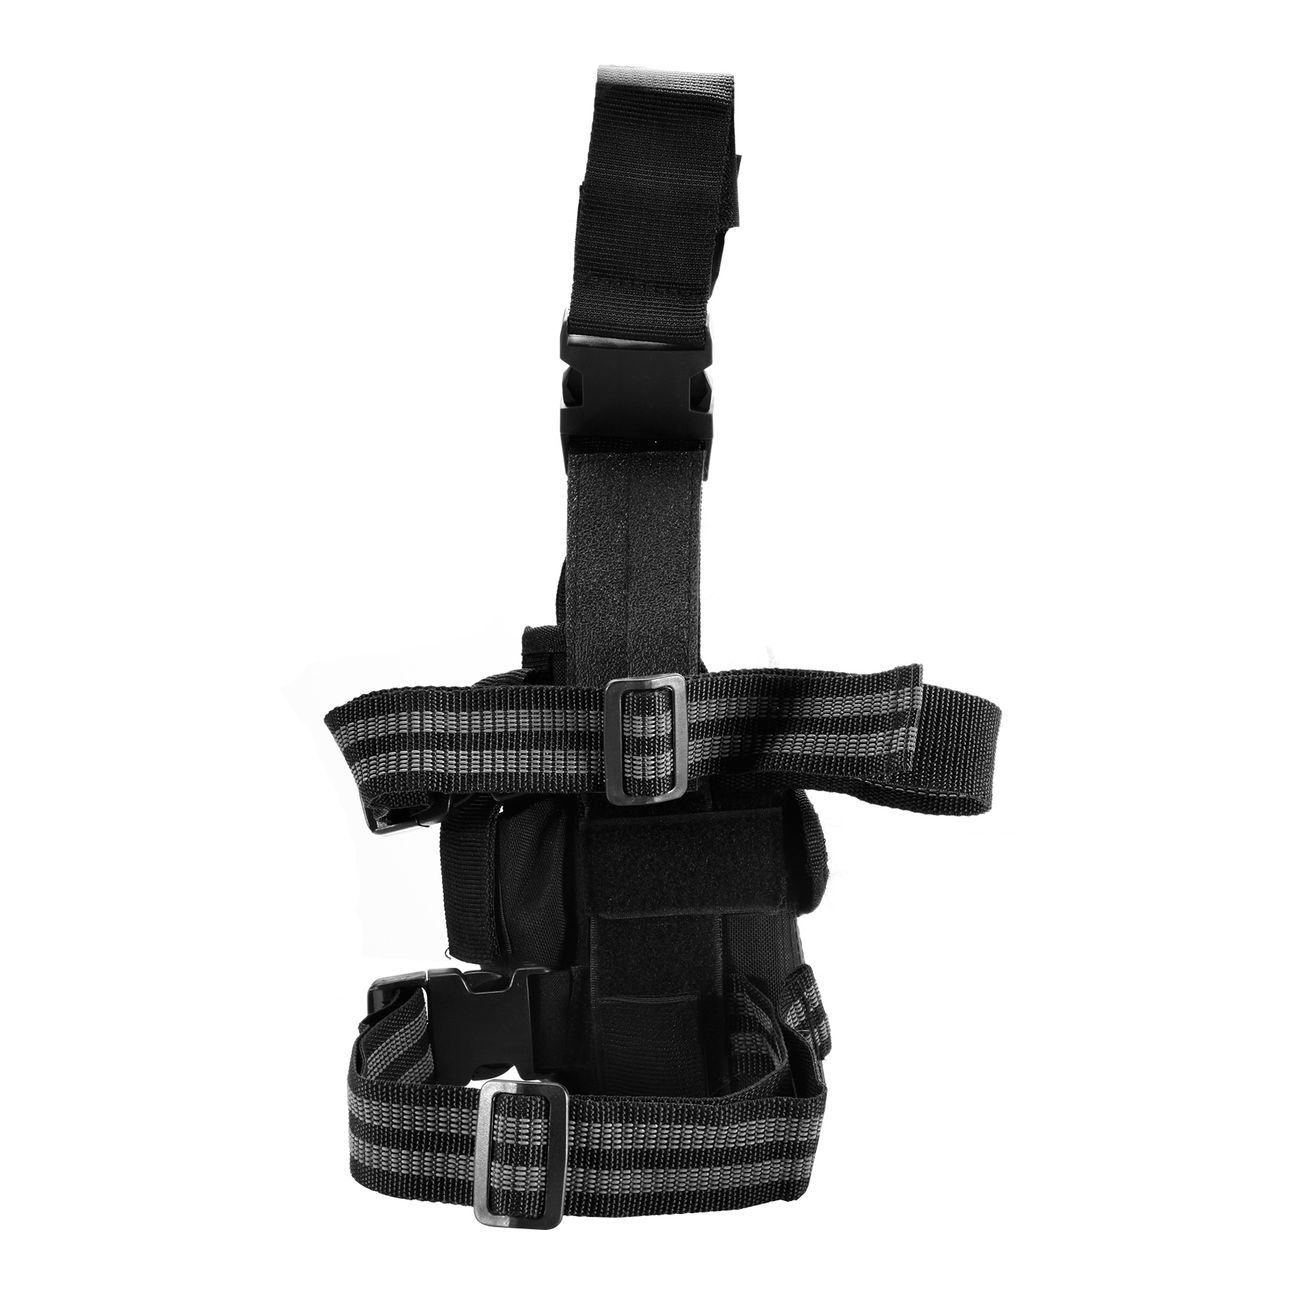 101 INC. Adjustable Holster schwarz 3